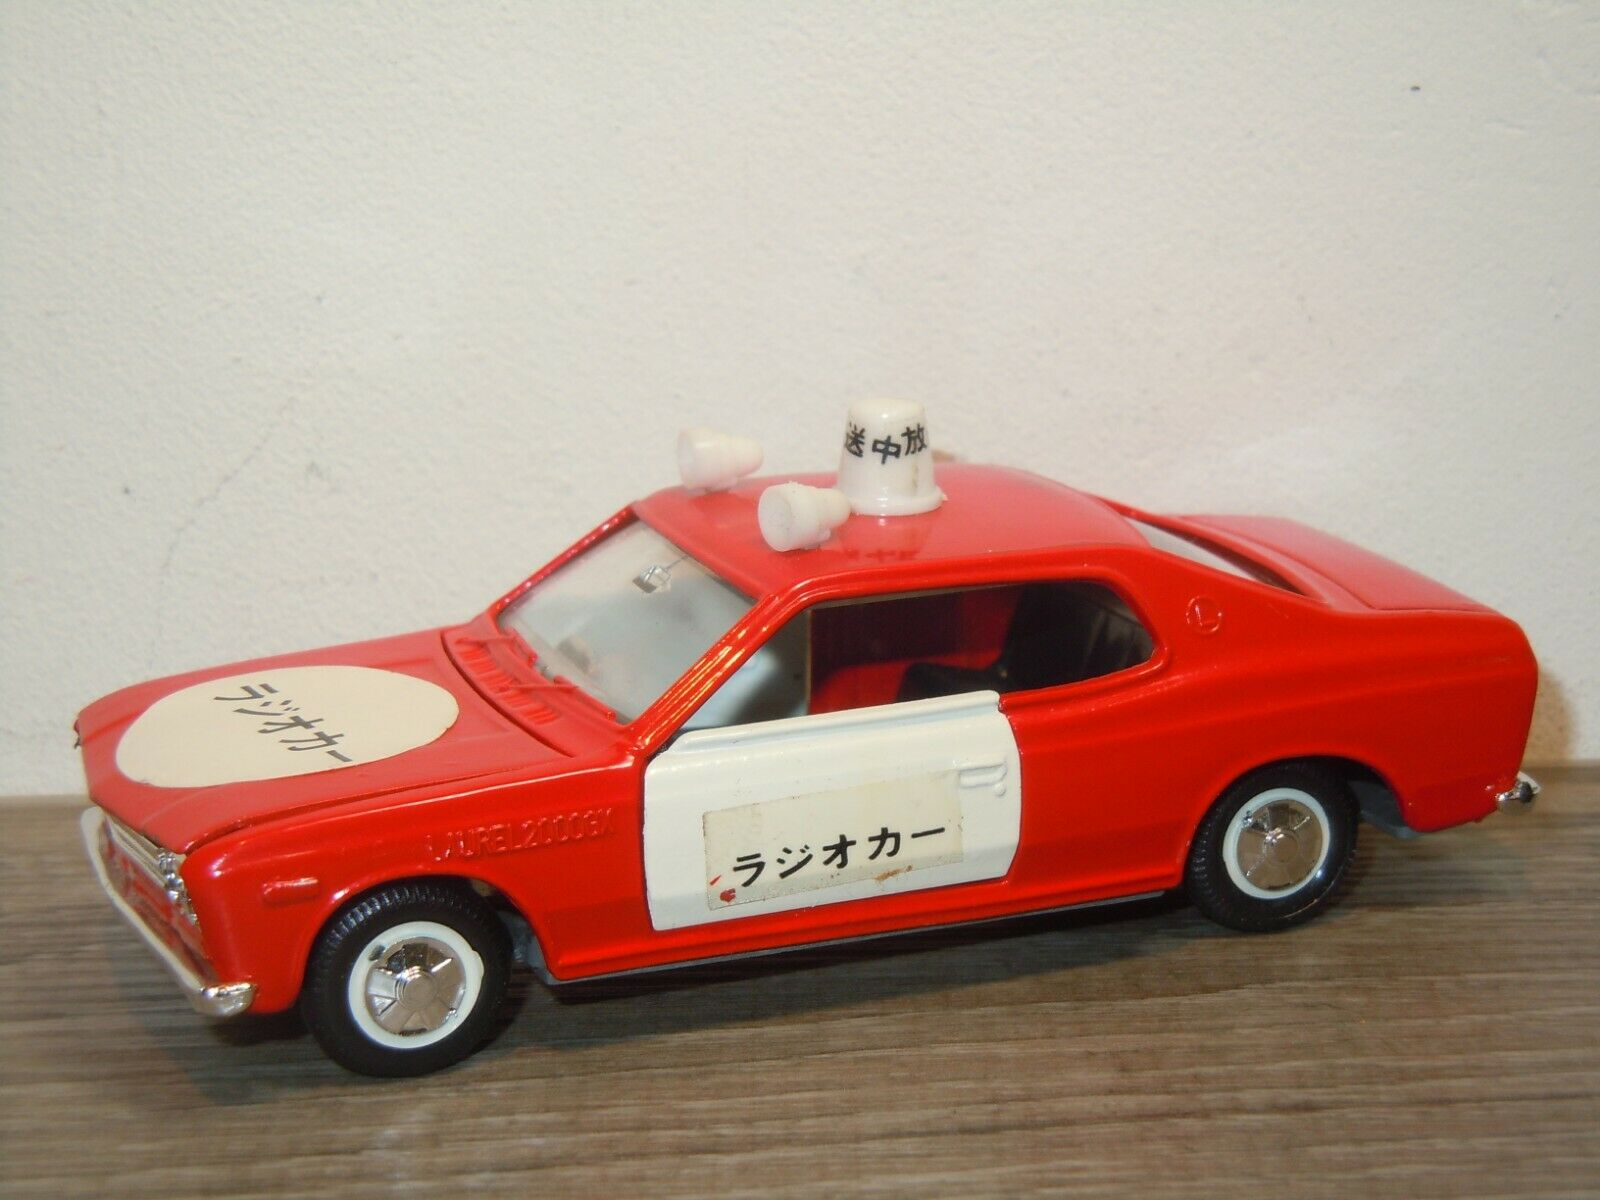 Nissan Laurel Hardtop 2000GX Fire Car - Diapet Yonezawa Toys D-217 Japan 36825